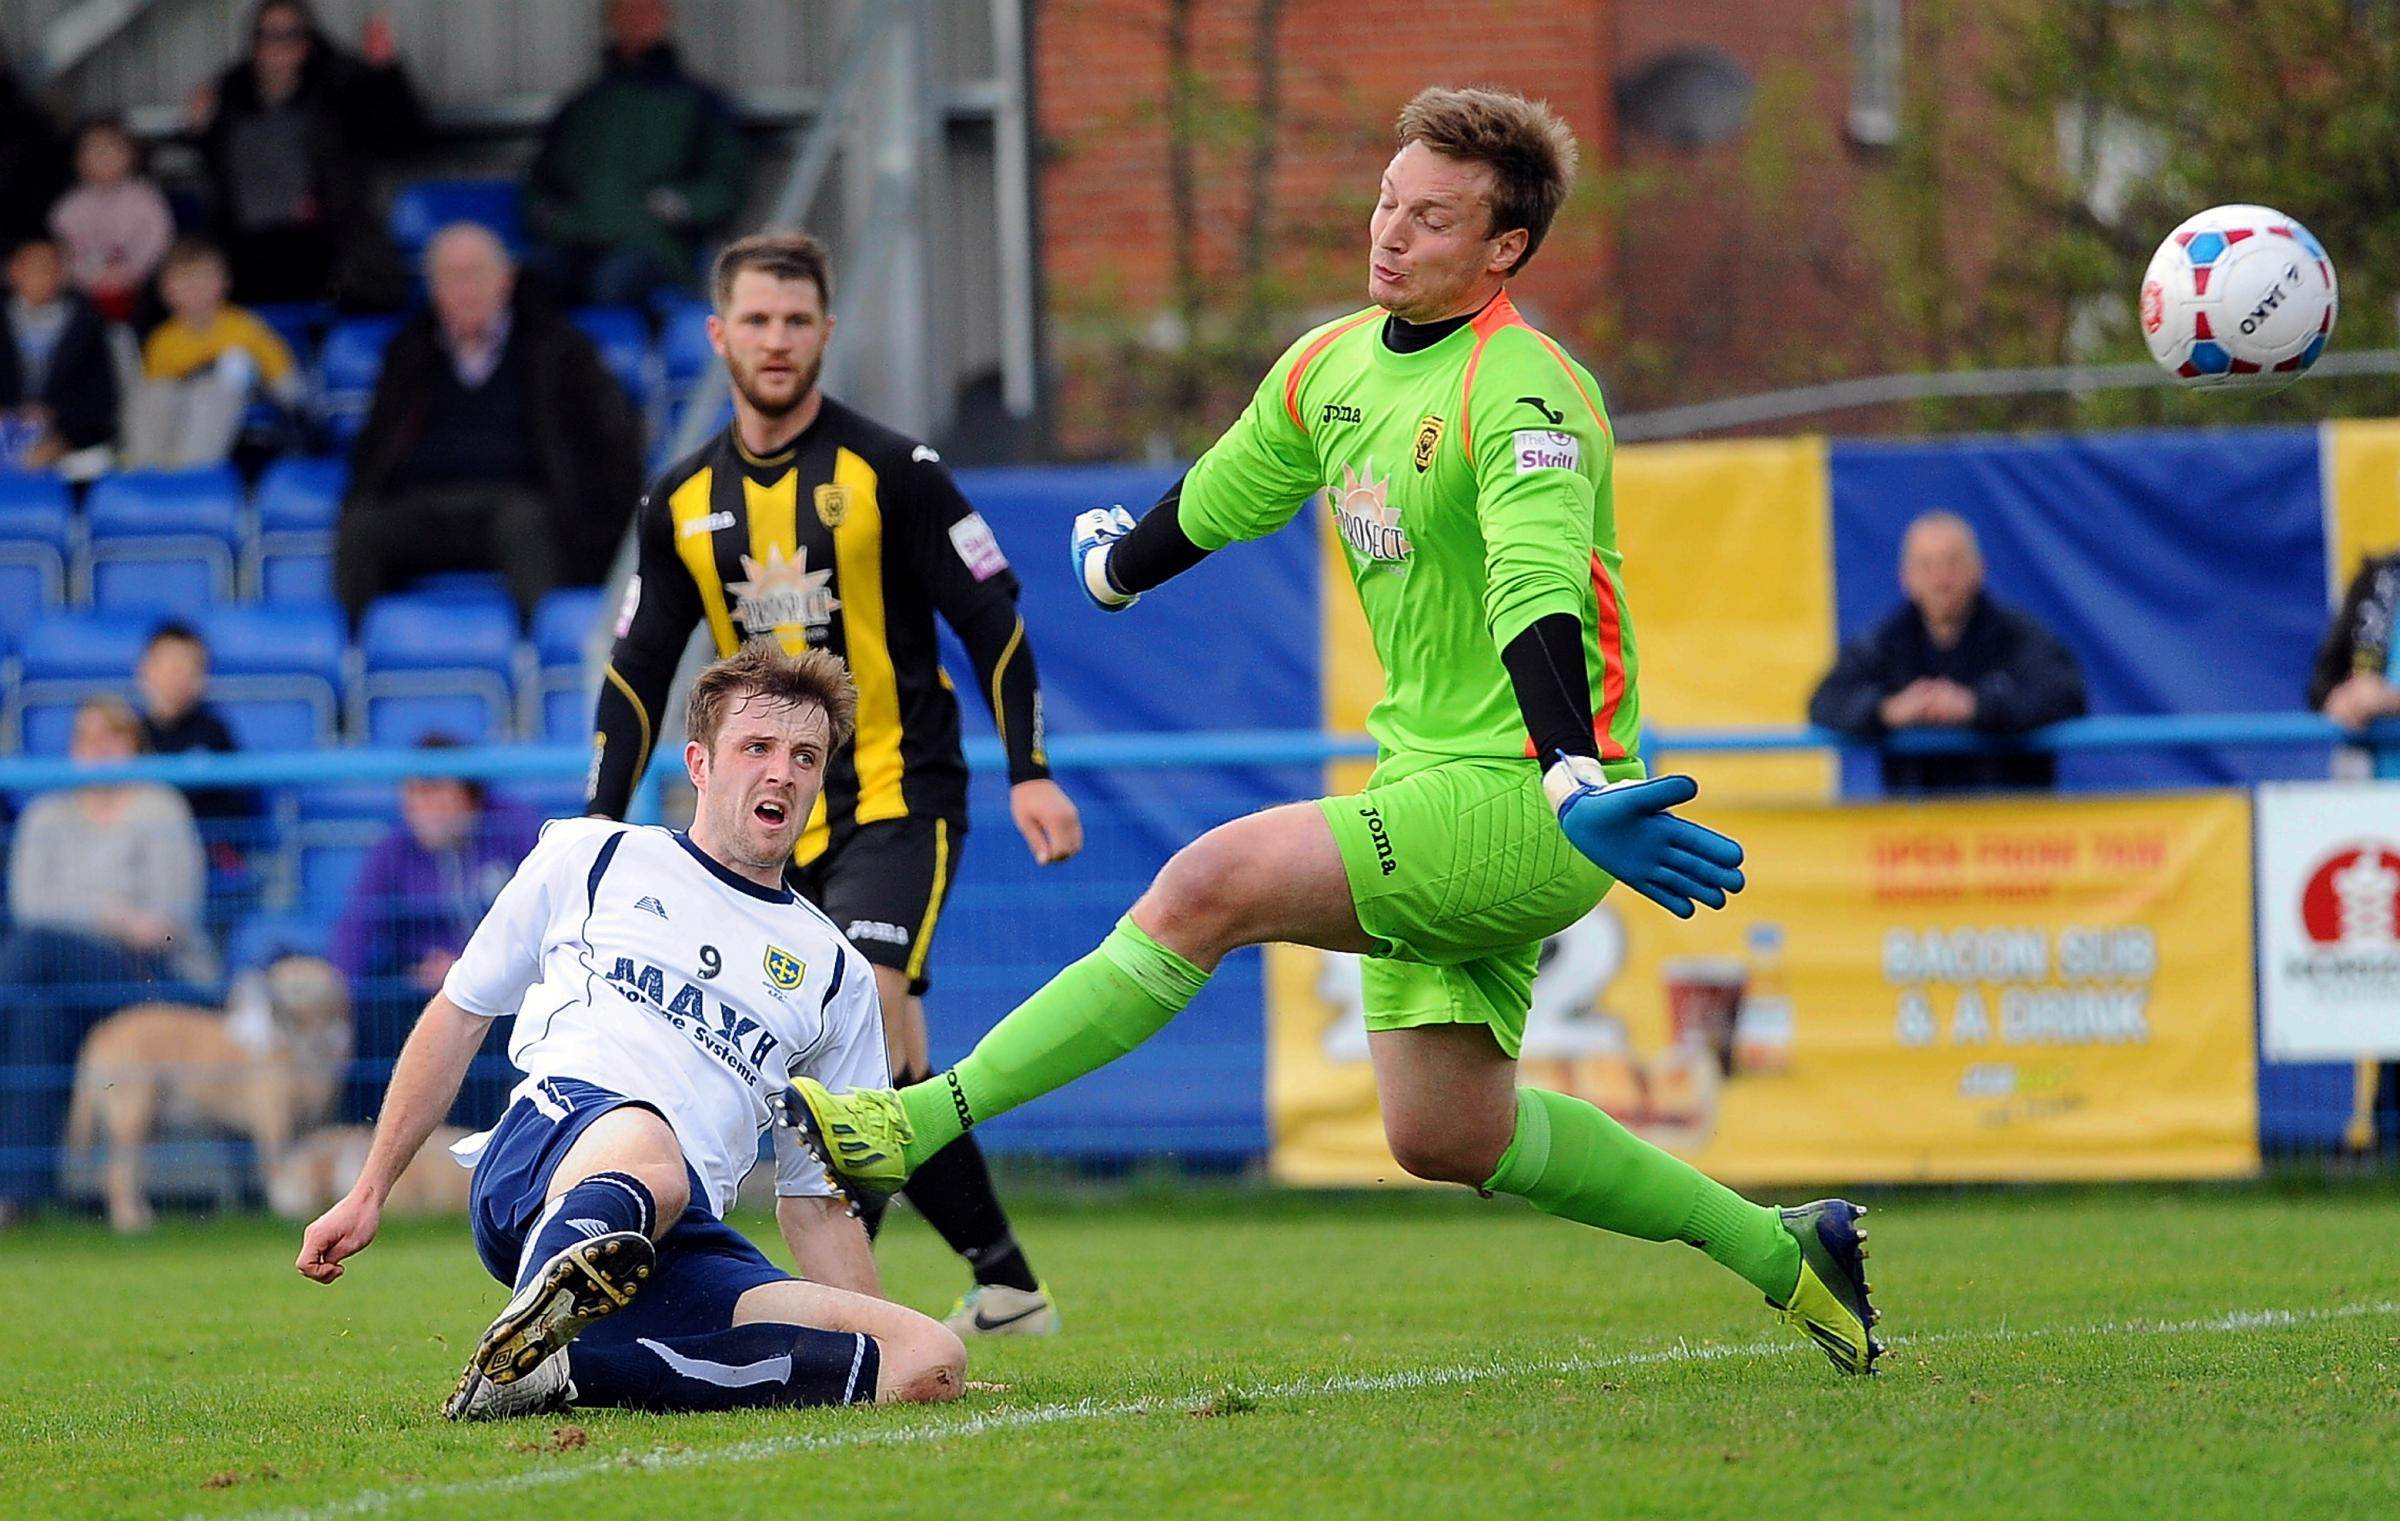 Adam Boyes scores in the home win over Gloucester City as Guiseley roared into the play-offs